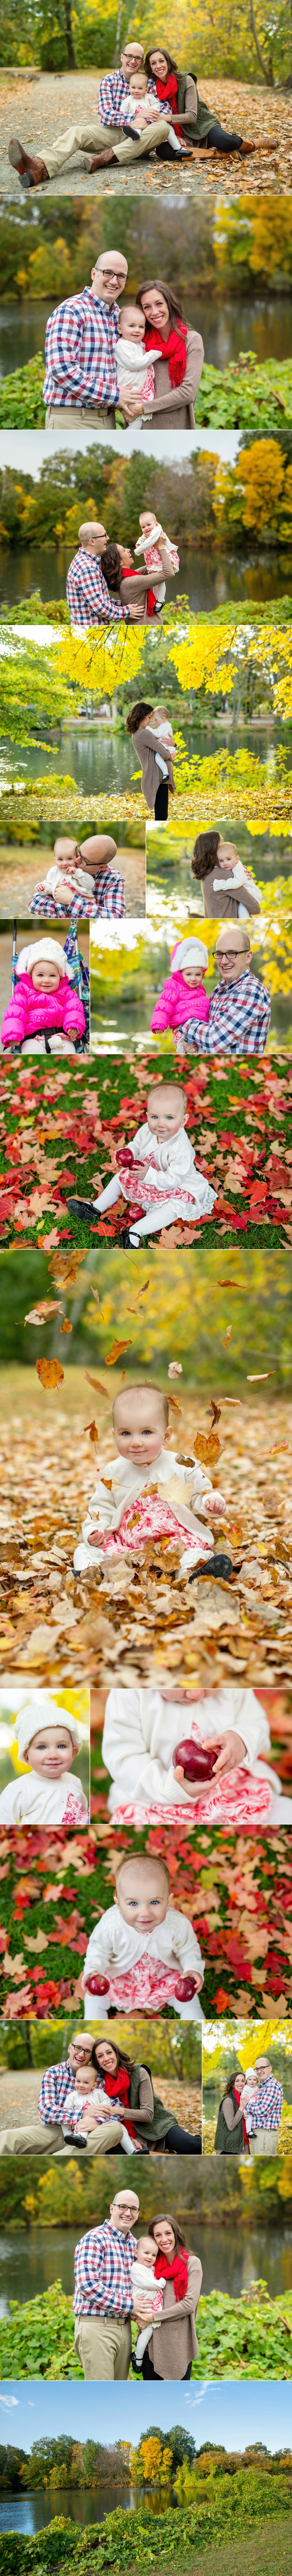 Brookline baby photographer Kate Lemmon captures outdoor images of a one-year-old baby using natural light and colorful autumn leaves.